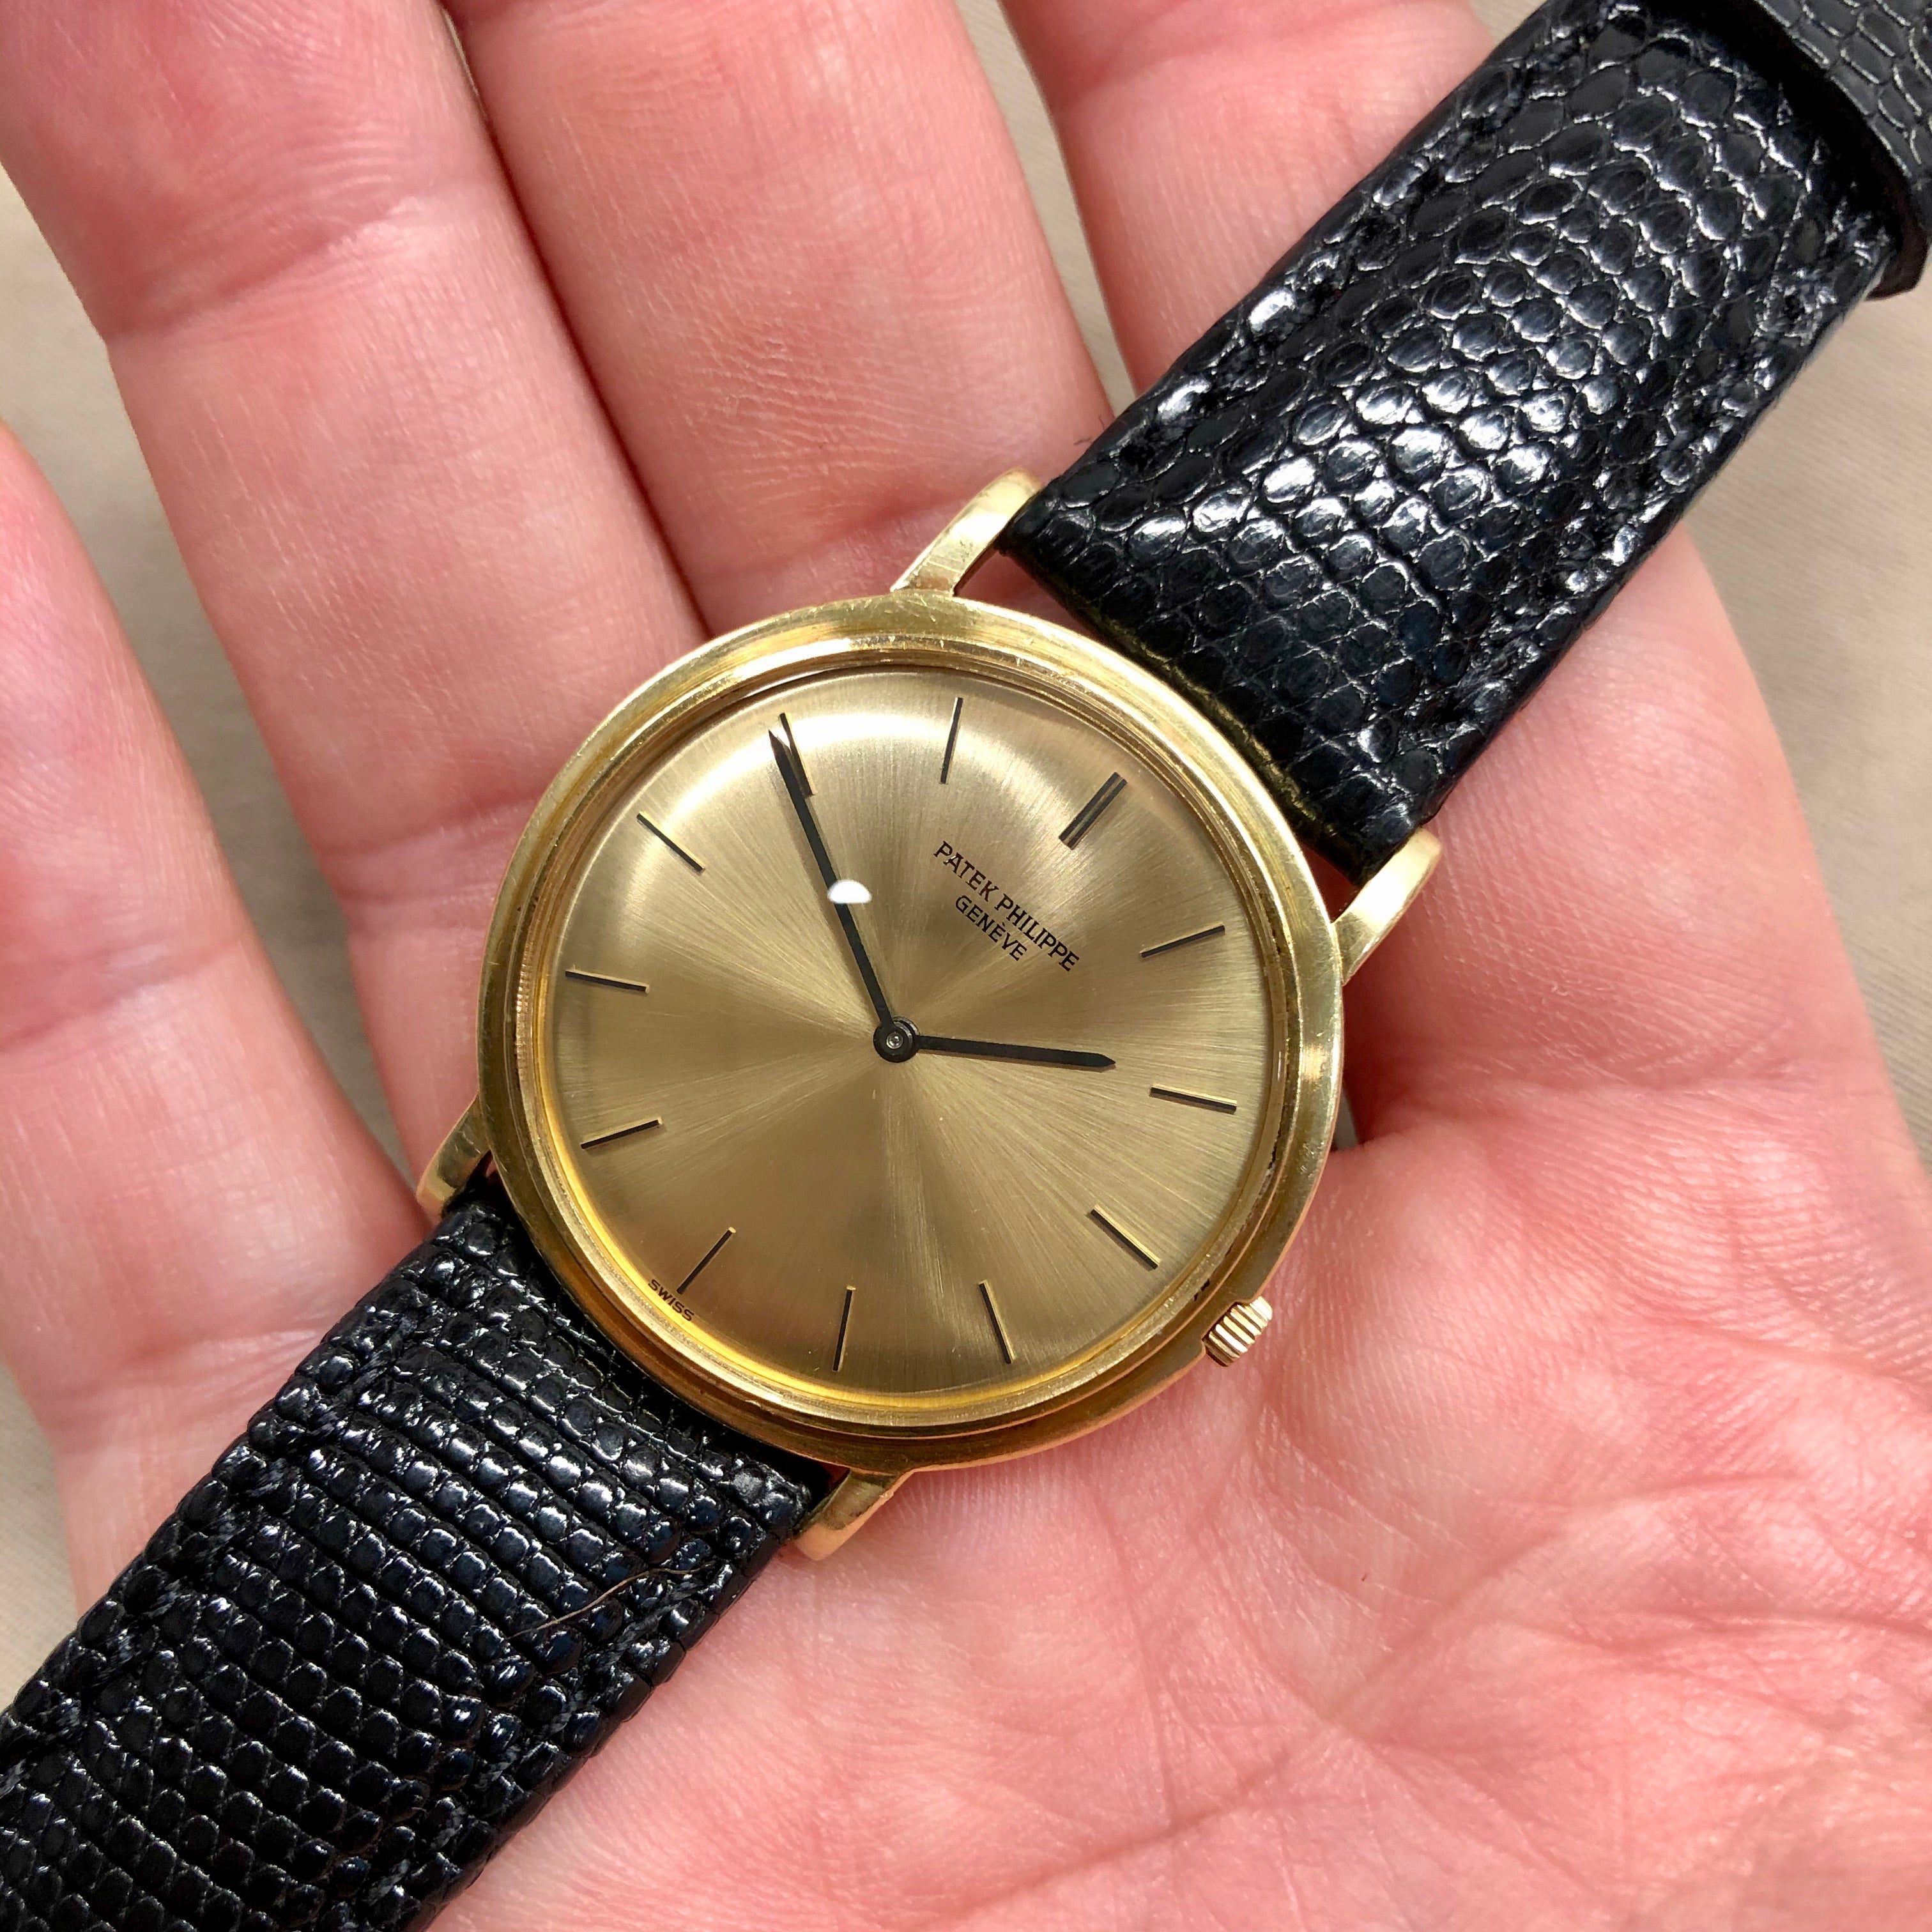 Vintage Patek Philippe Calatrava 3520 18K Yellow Gold Screw Back Manual Wind Wristwatch - Hashtag Watch Company